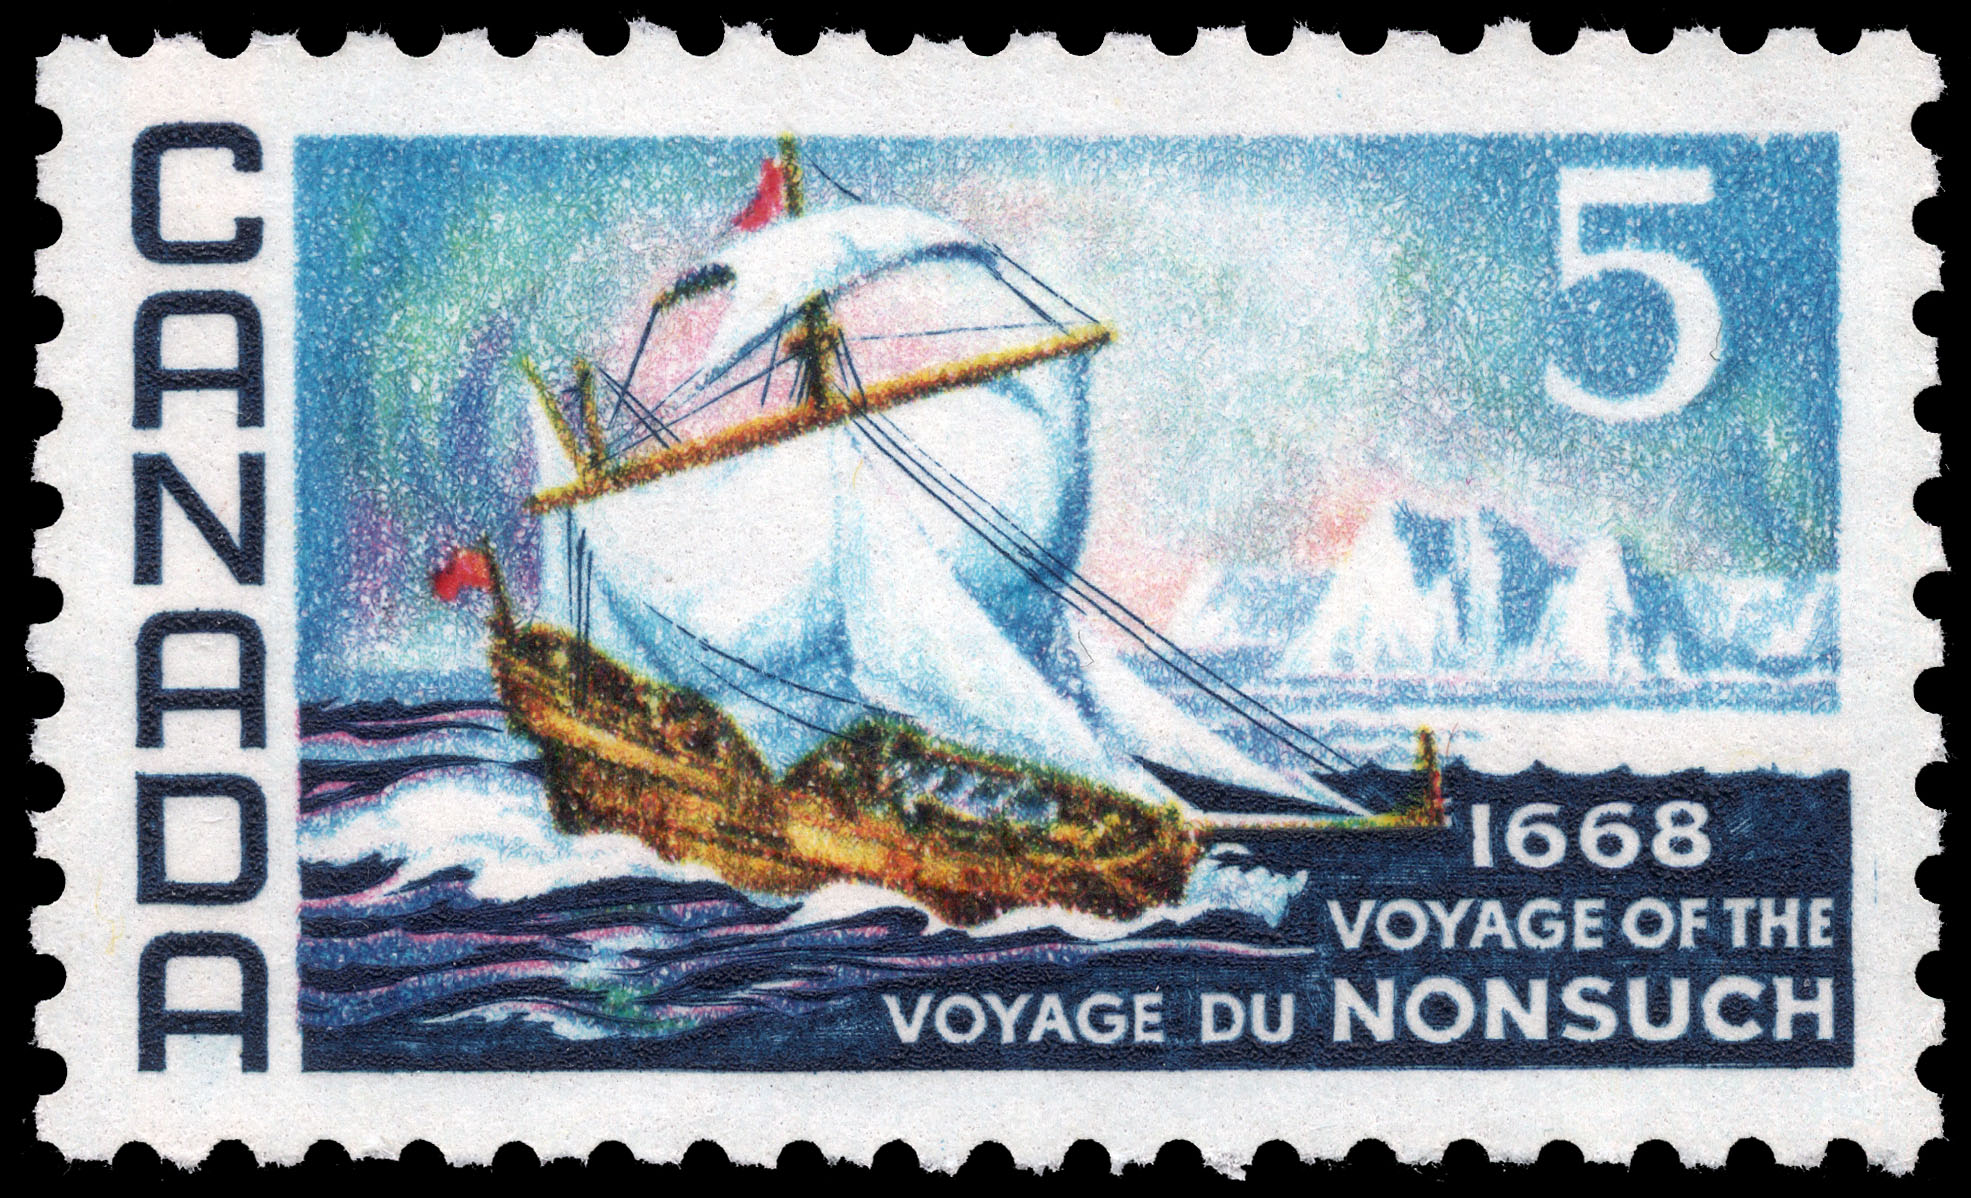 Voyage of the Nonsuch, 1668 Canada Postage Stamp